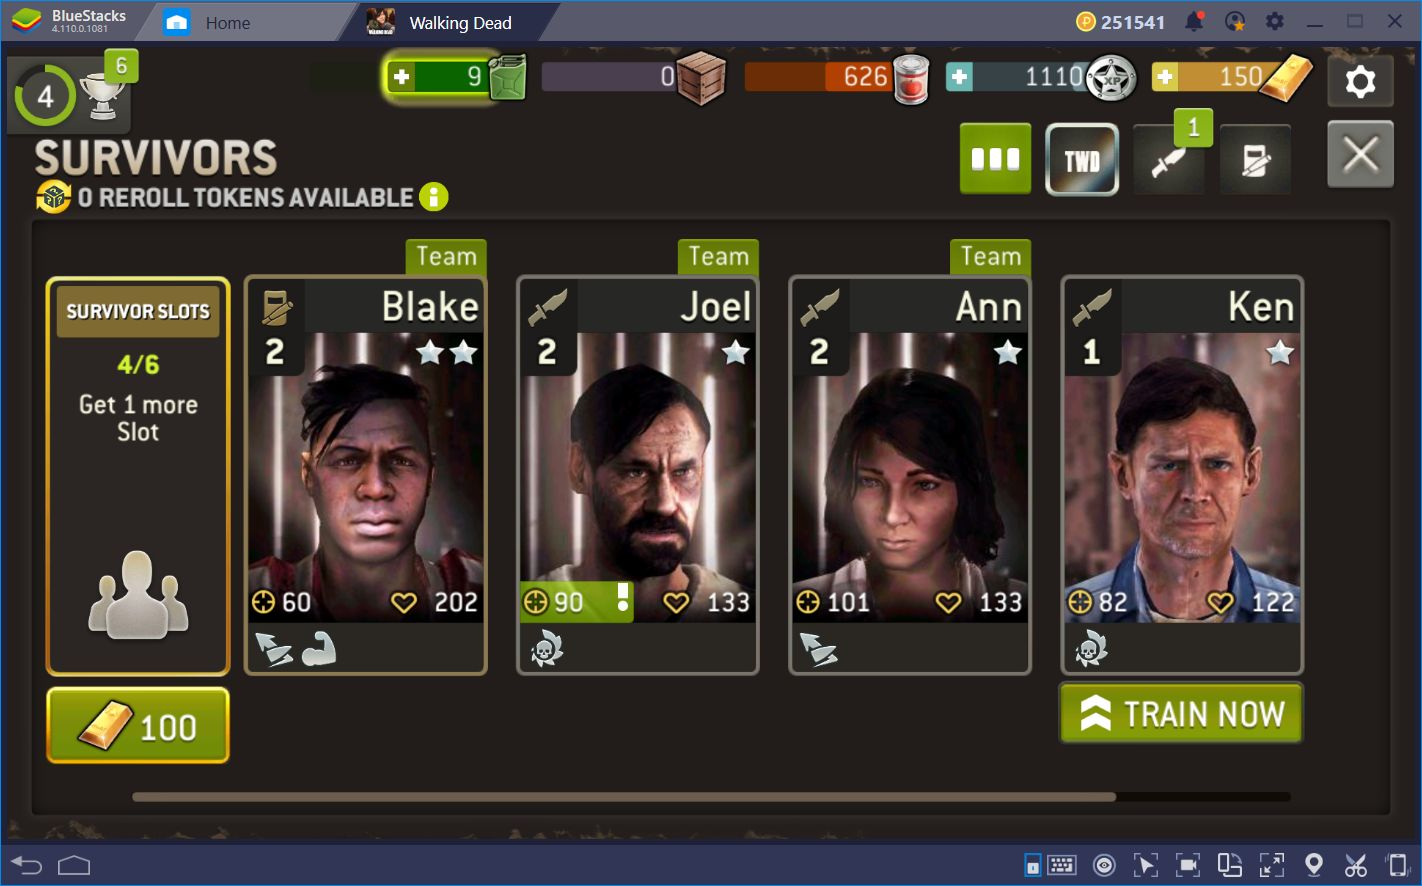 Enjoy The Walking Dead No Man's Land on BlueStacks